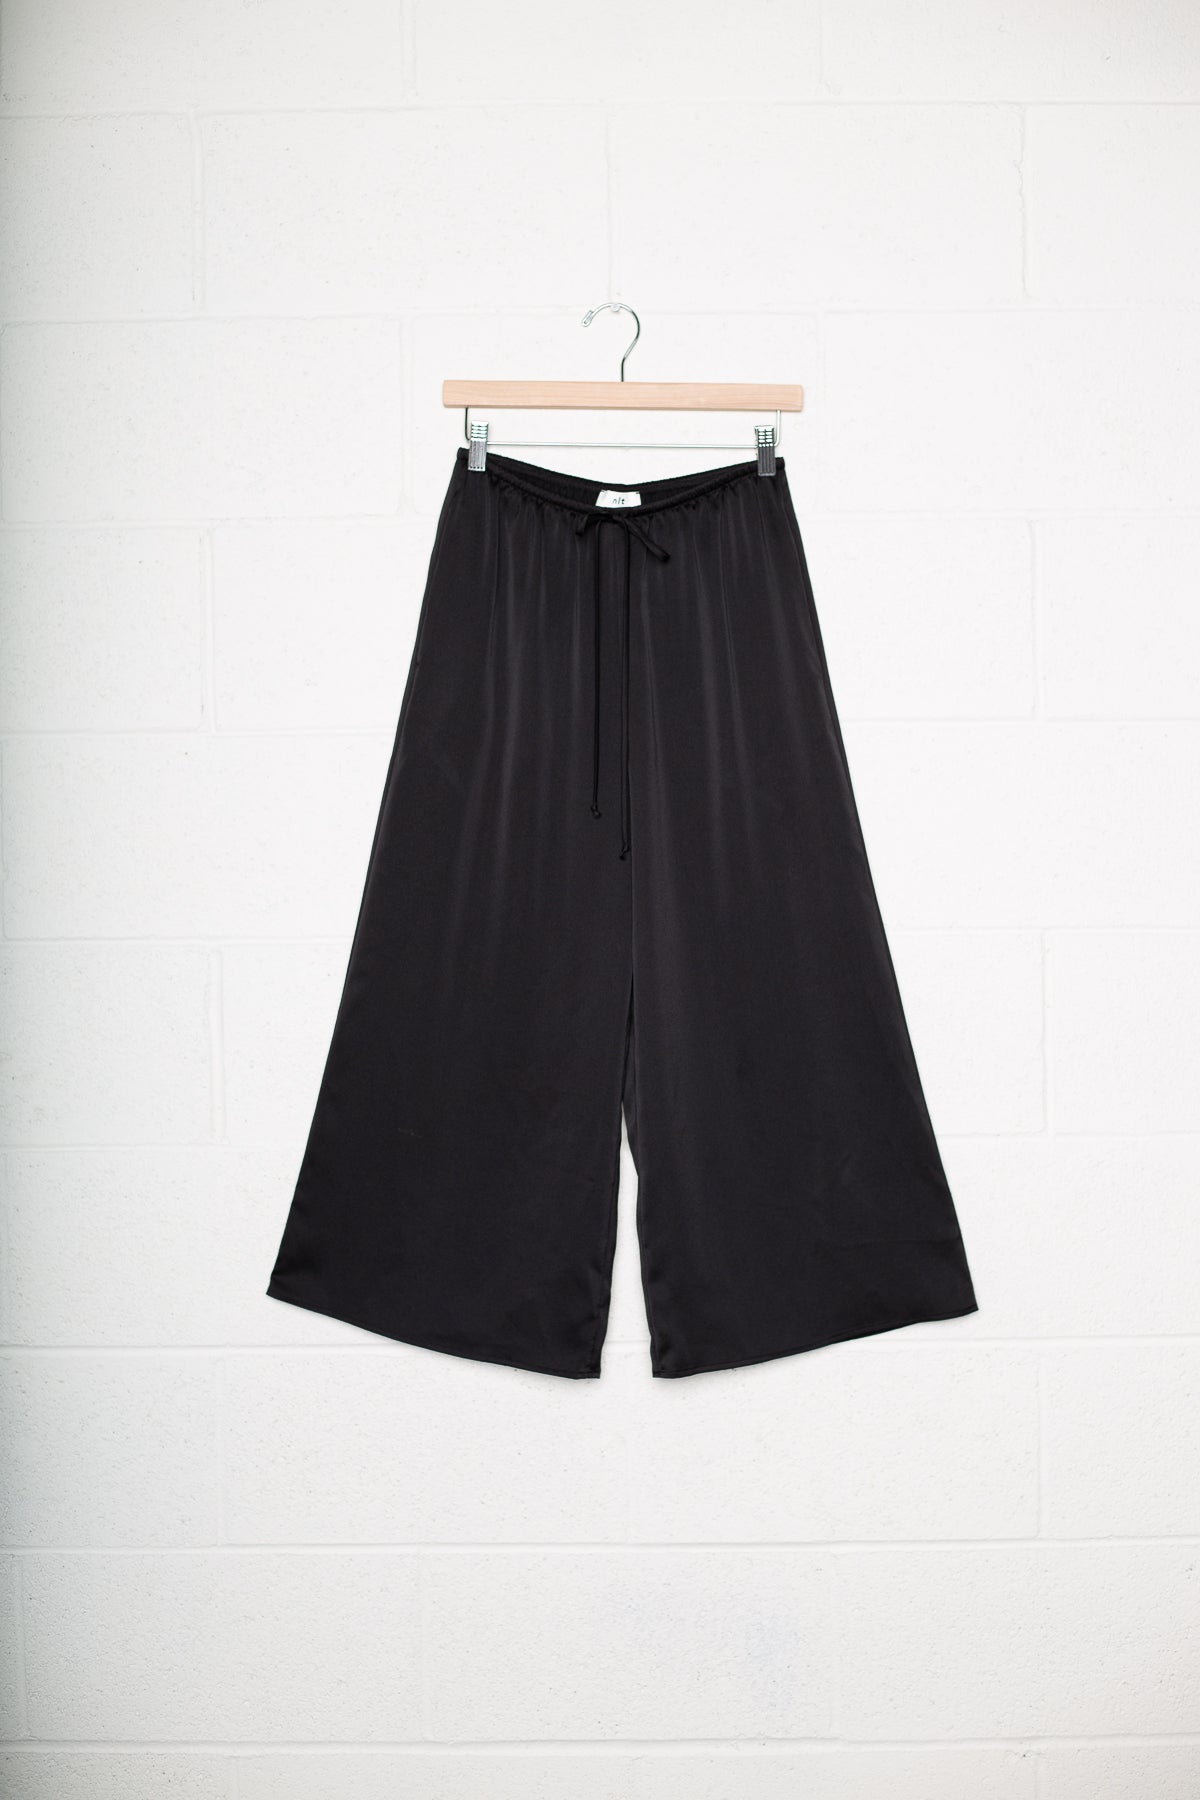 Silver Lining Satin Culotte Pants